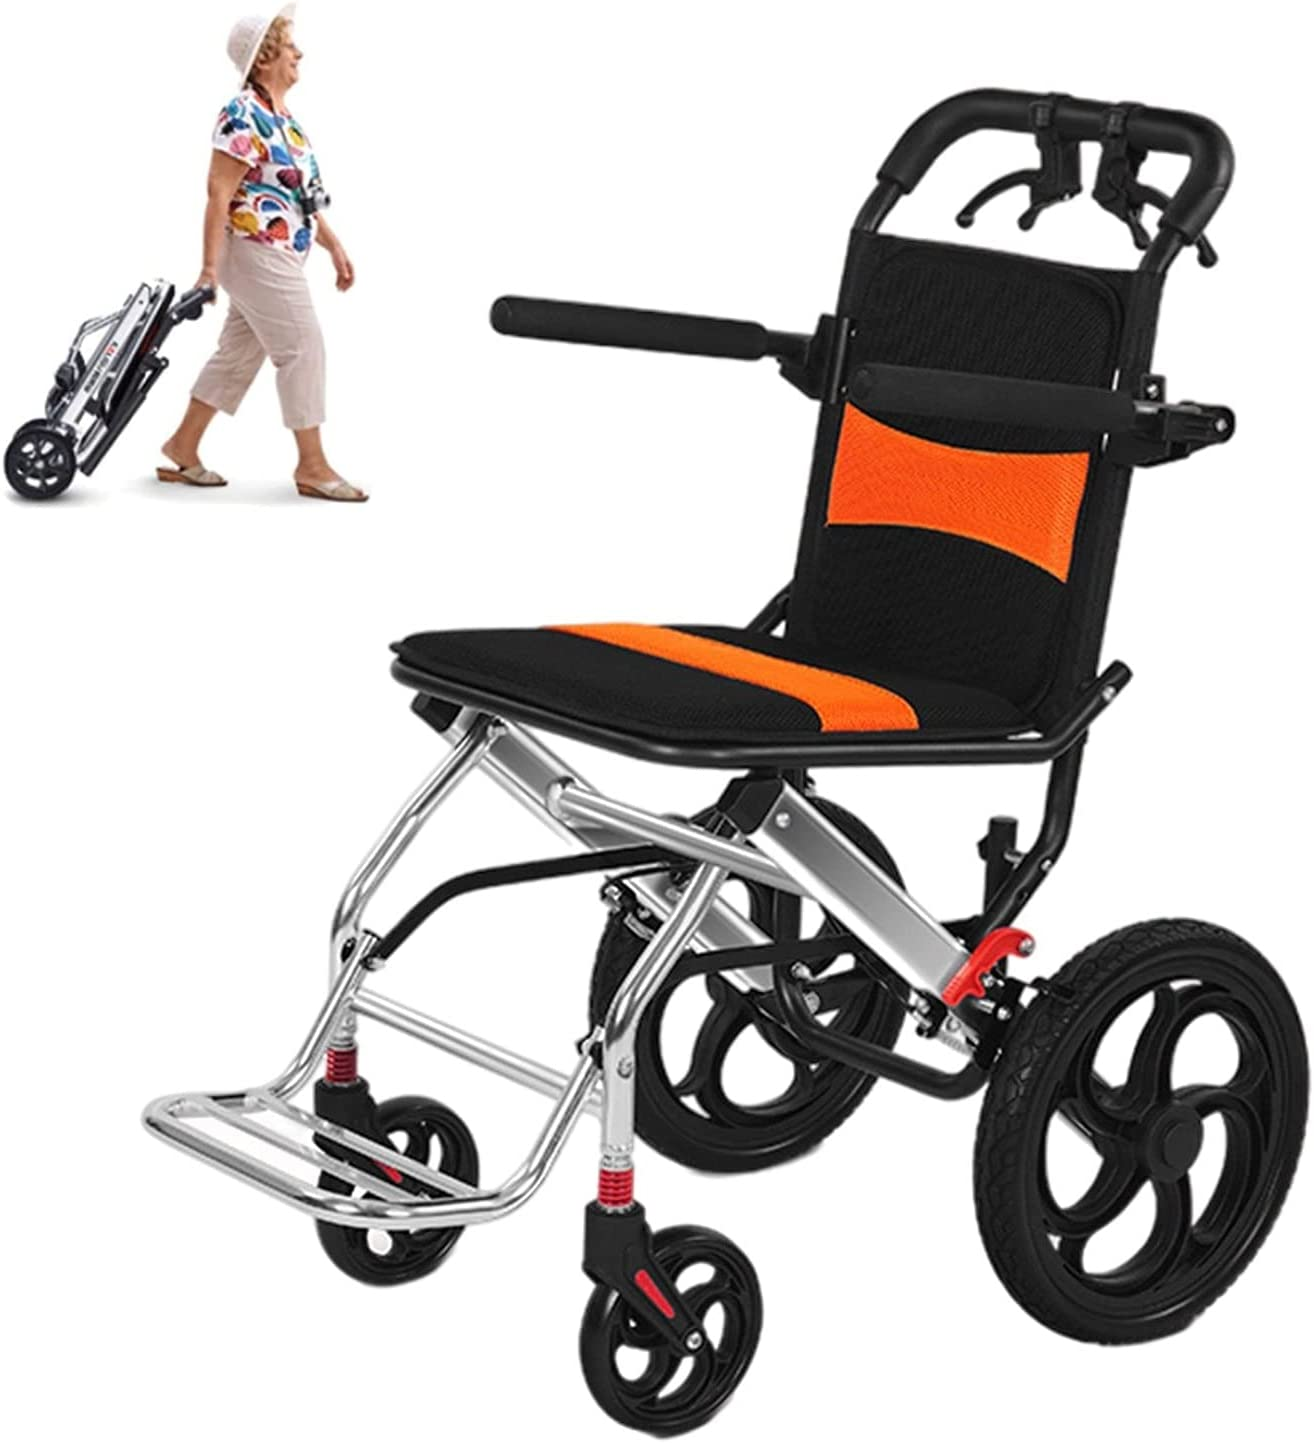 YYOBK Folding High order Wheelchairs Portable Excellence Hand Travel with